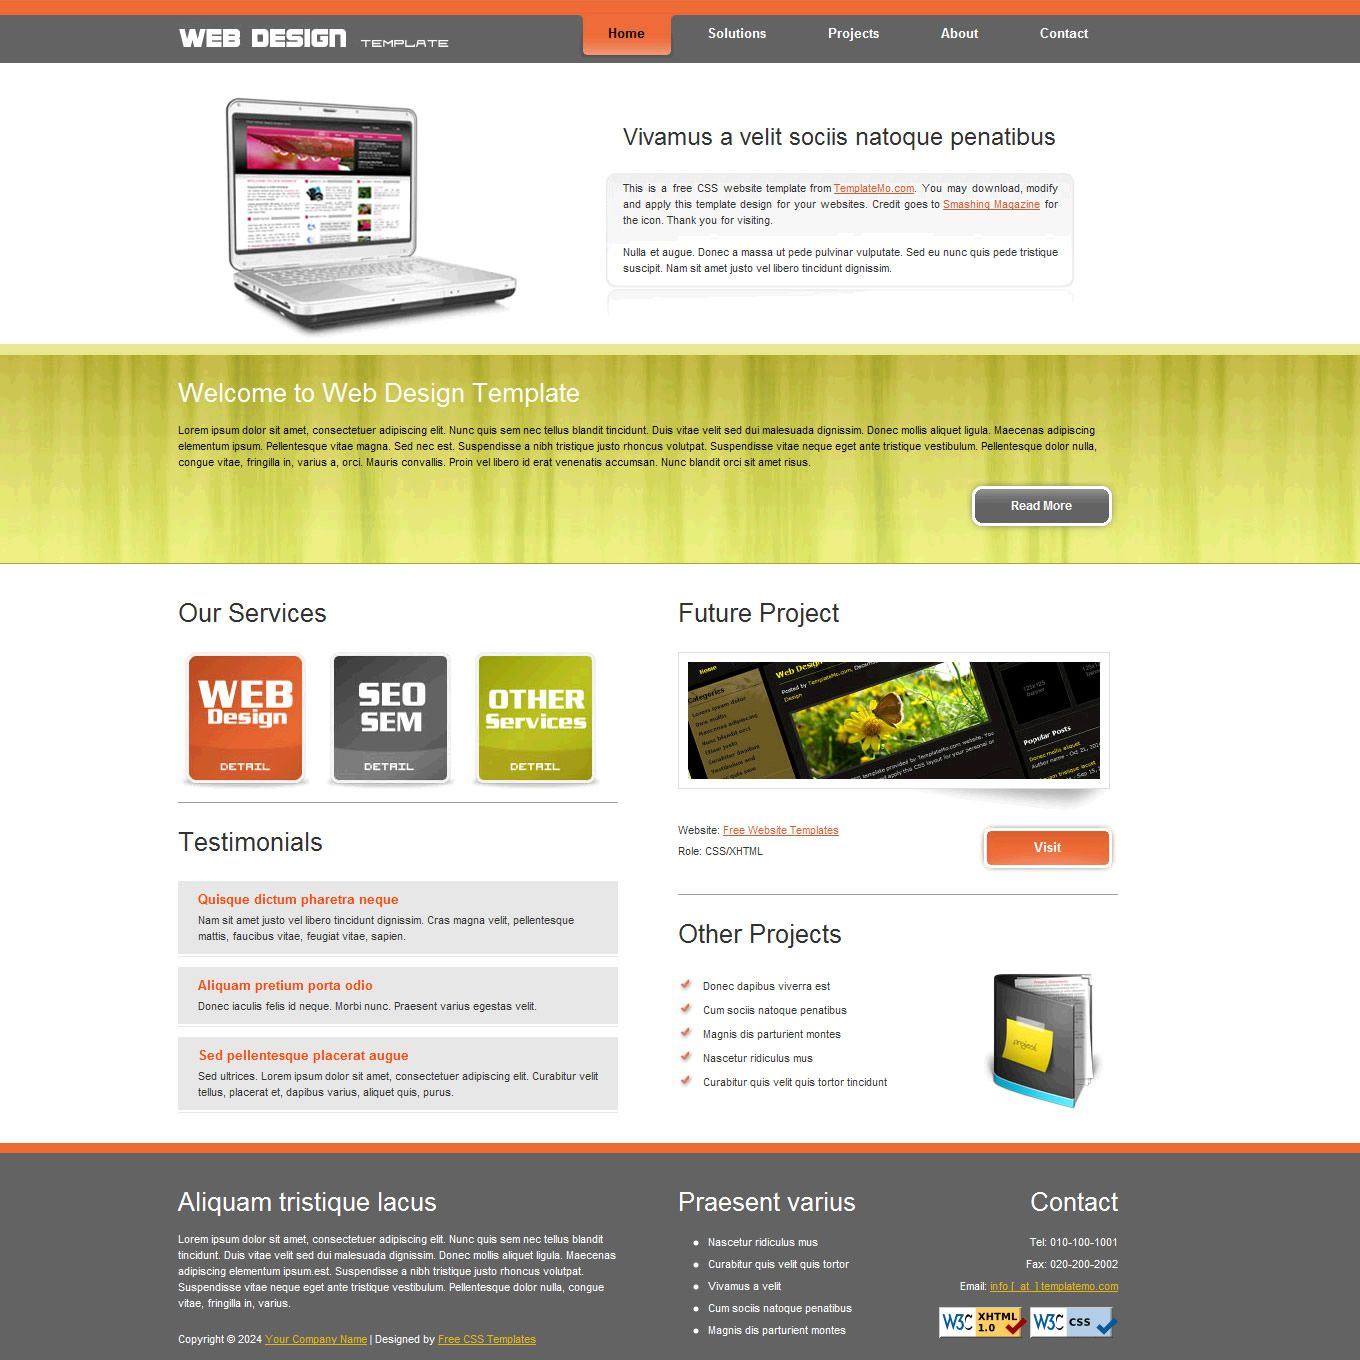 Free Web Design Templates local business advertising | local ...